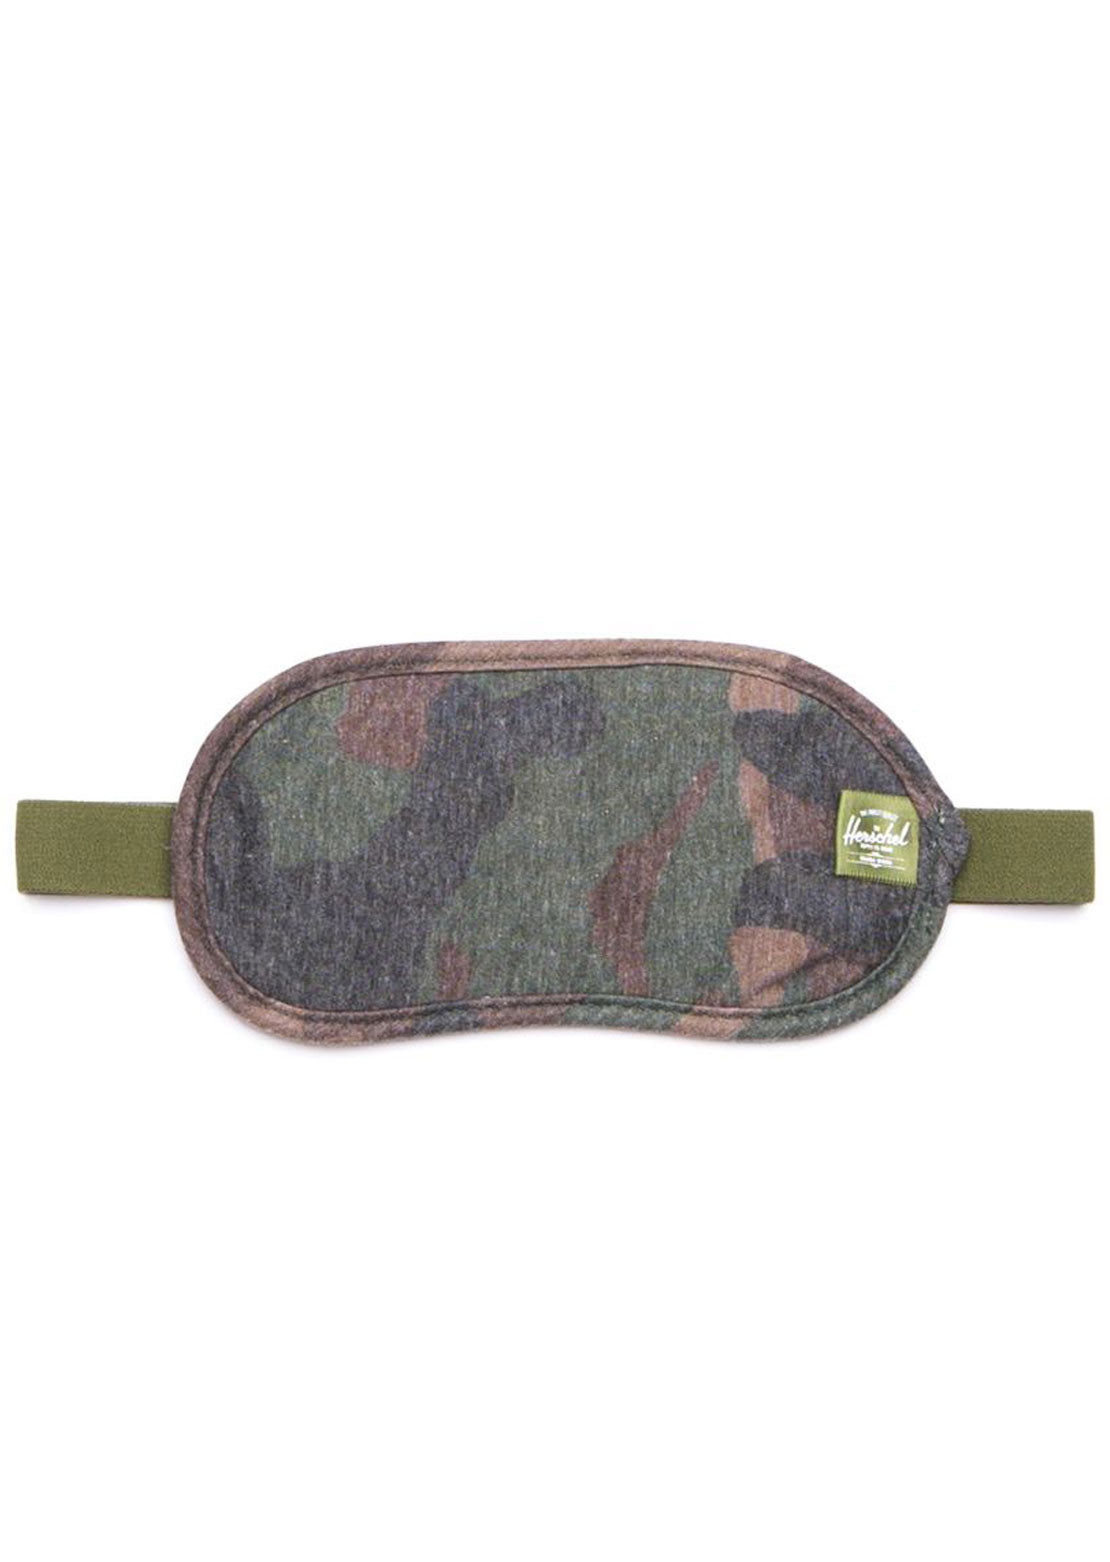 Herschel Amenity Kit Woodland Camo